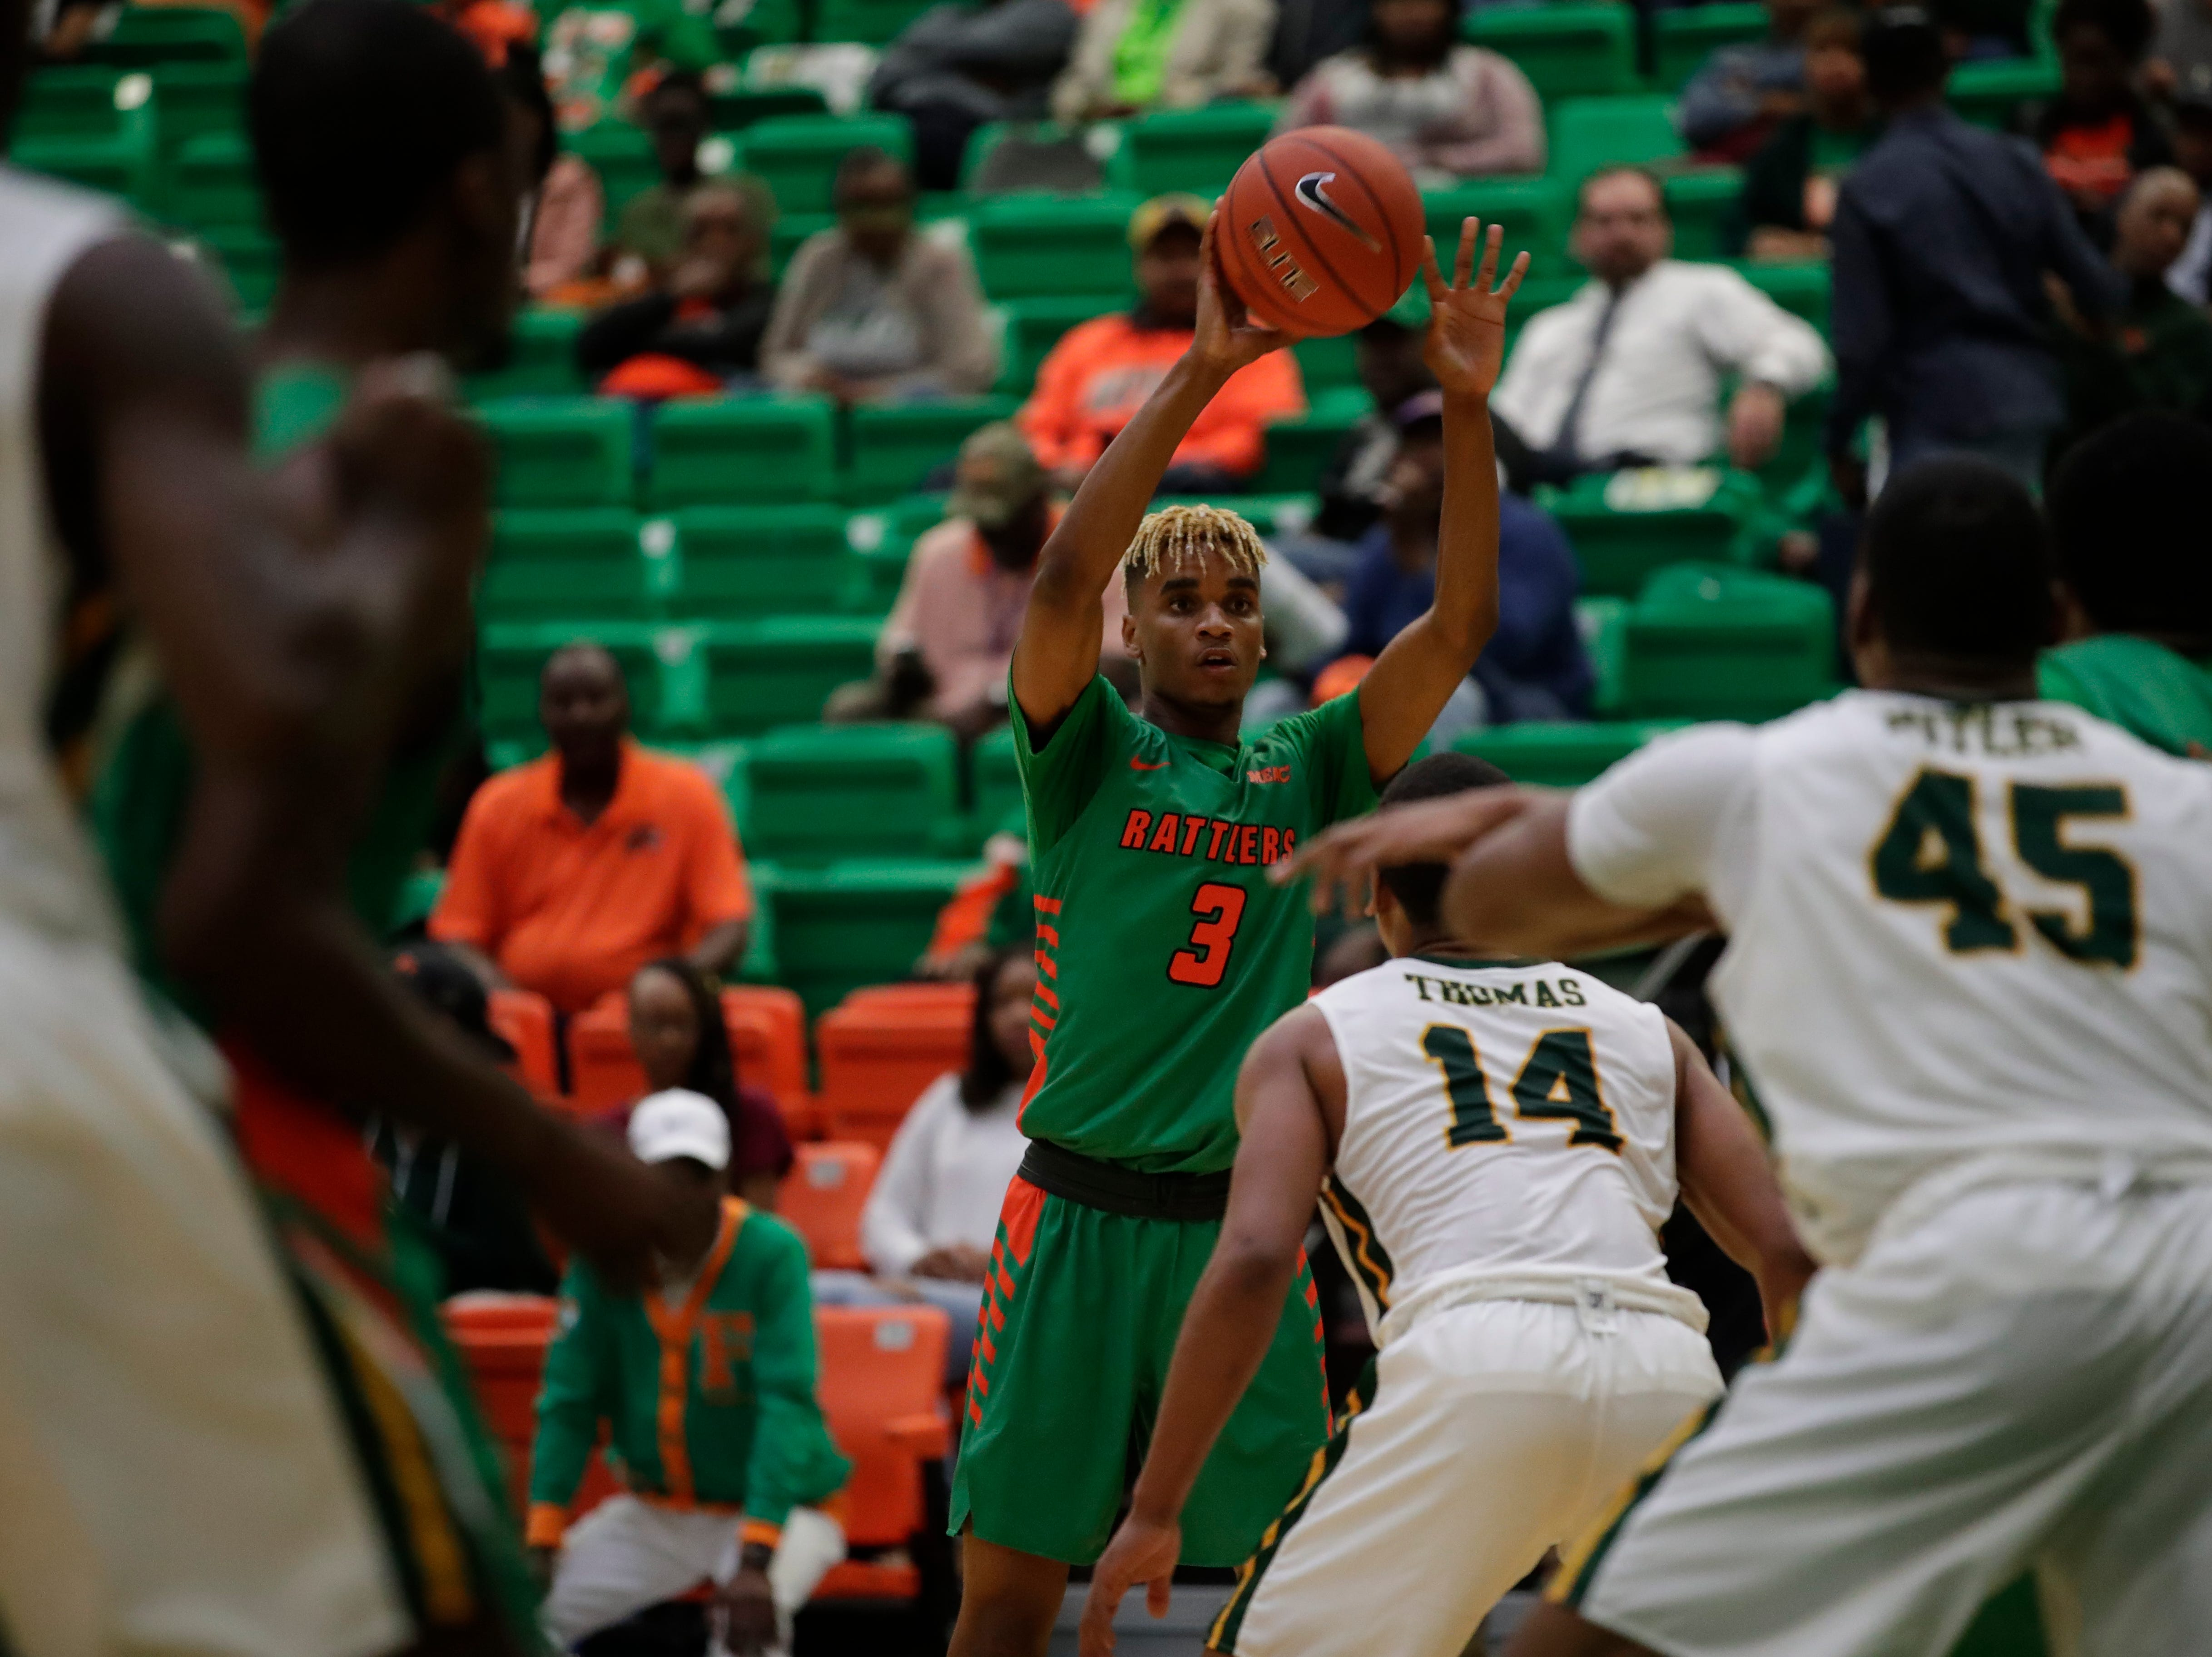 Florida A&M Rattlers guard MJ Randolph (3) makes a pass during a game between FAMU and Norfolk State at the Alfred Lawson Jr. Multipurpose Center Monday, Feb. 11, 2019.